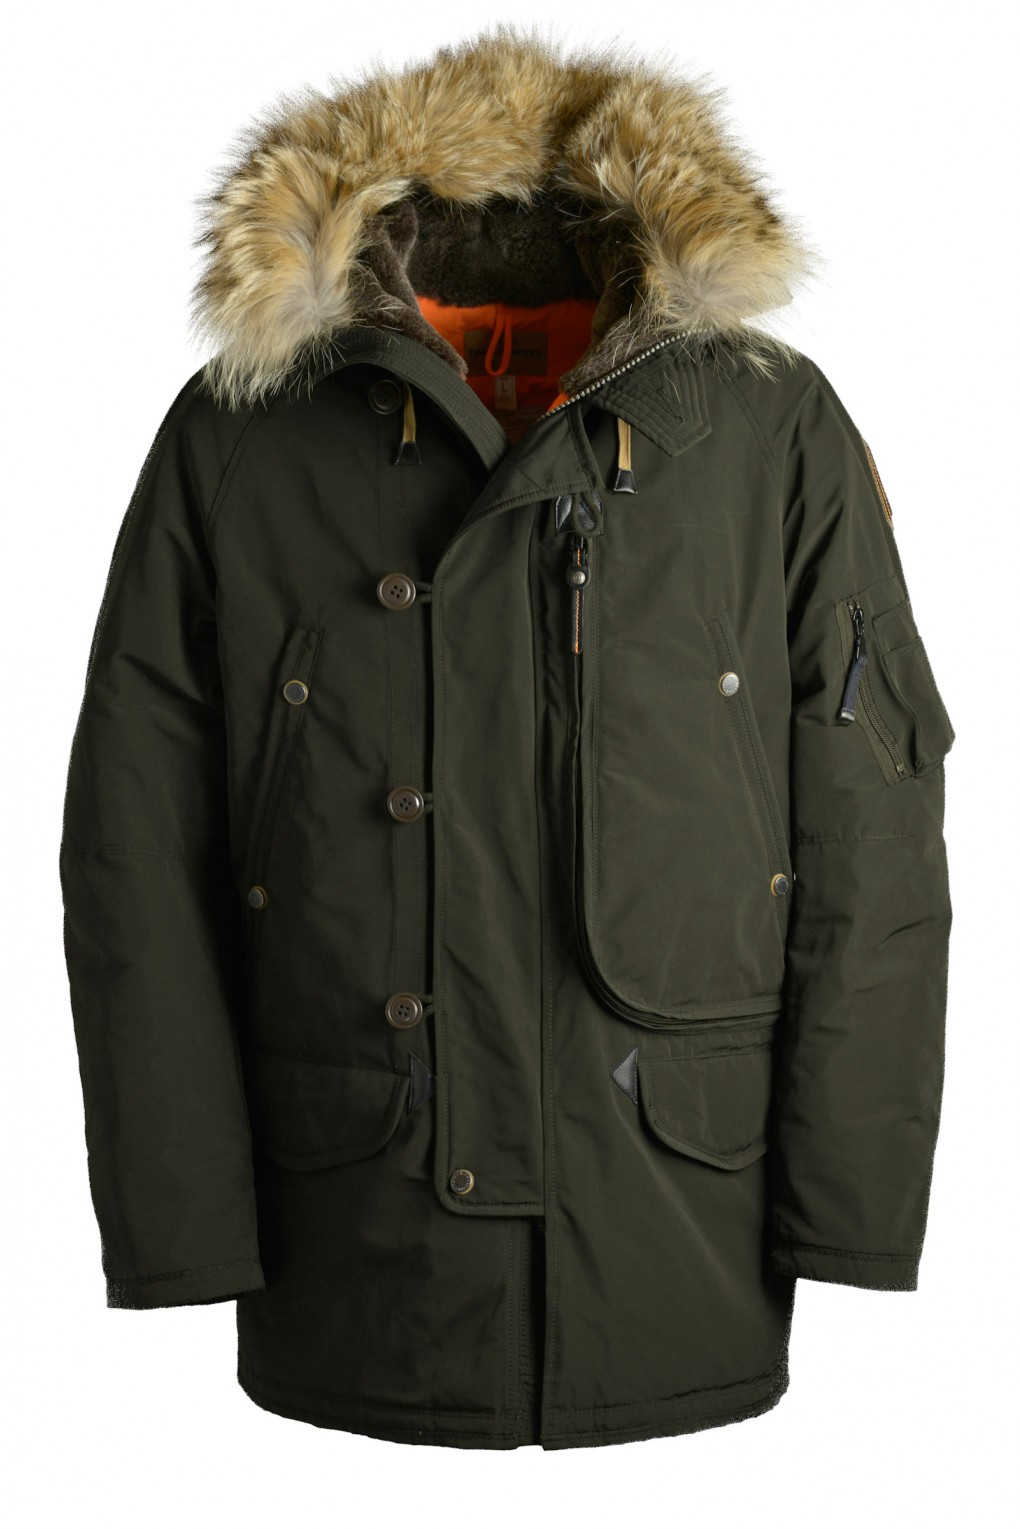 parajumpers TYPE N-3B man outerwear Olive